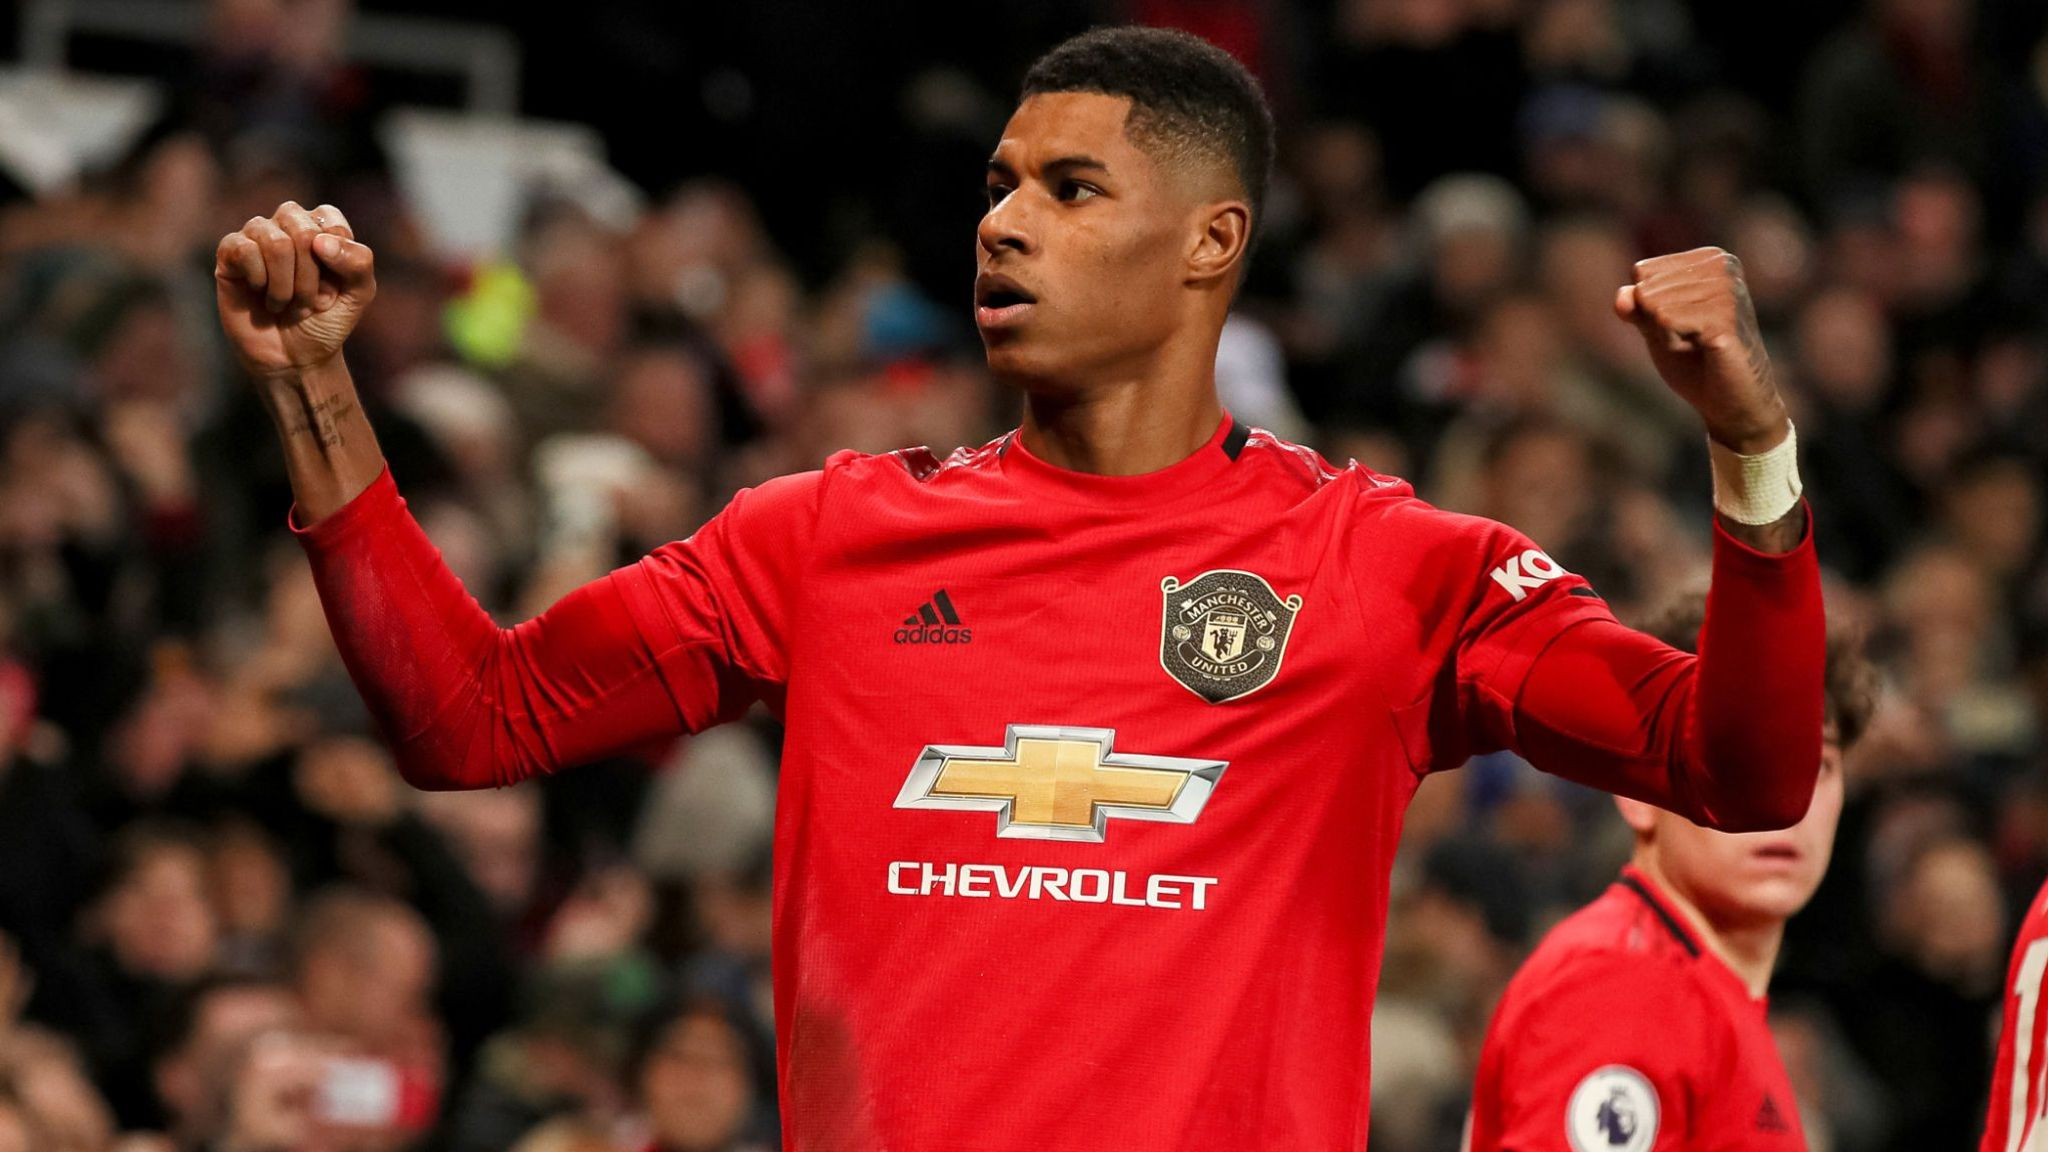 Manchester United's Marcus Rashford partners with Fnatic & UNICEF to promote positivity